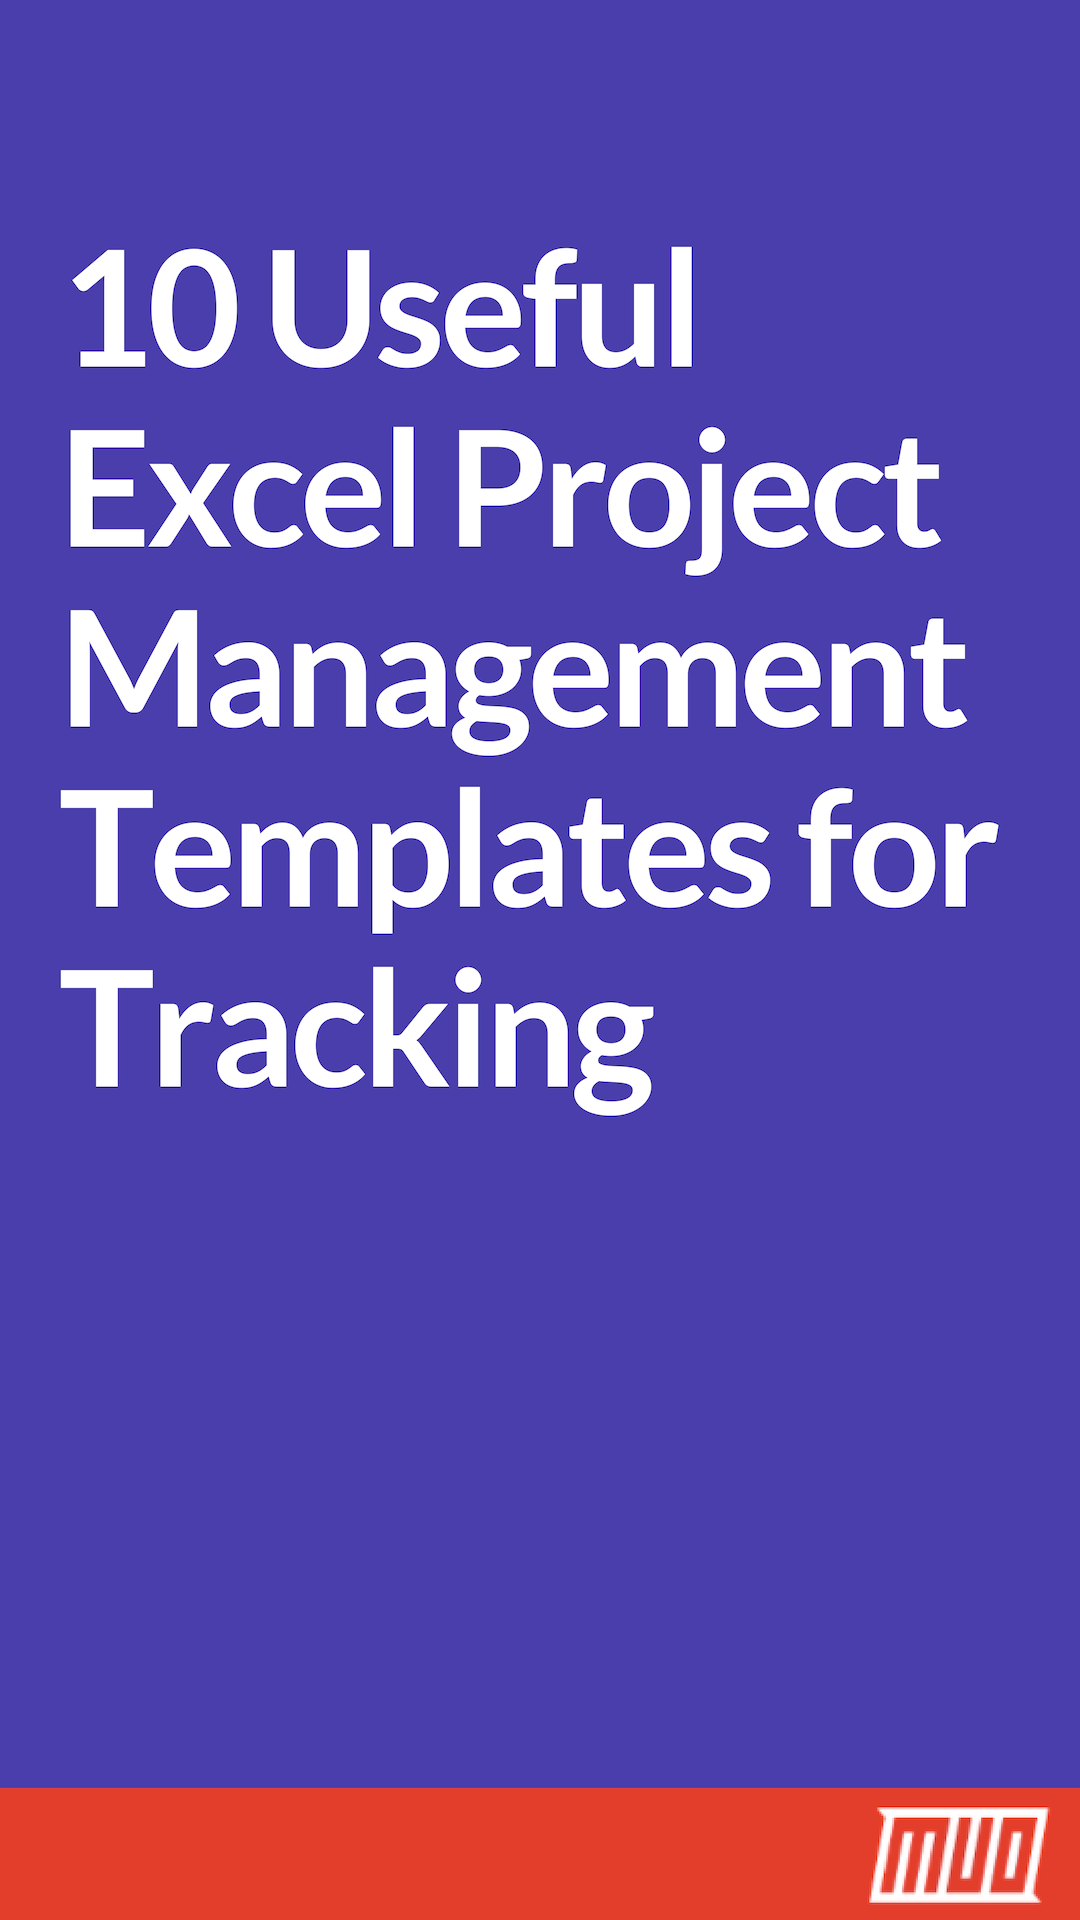 10 Powerful Excel Project Management Templates for Tracking